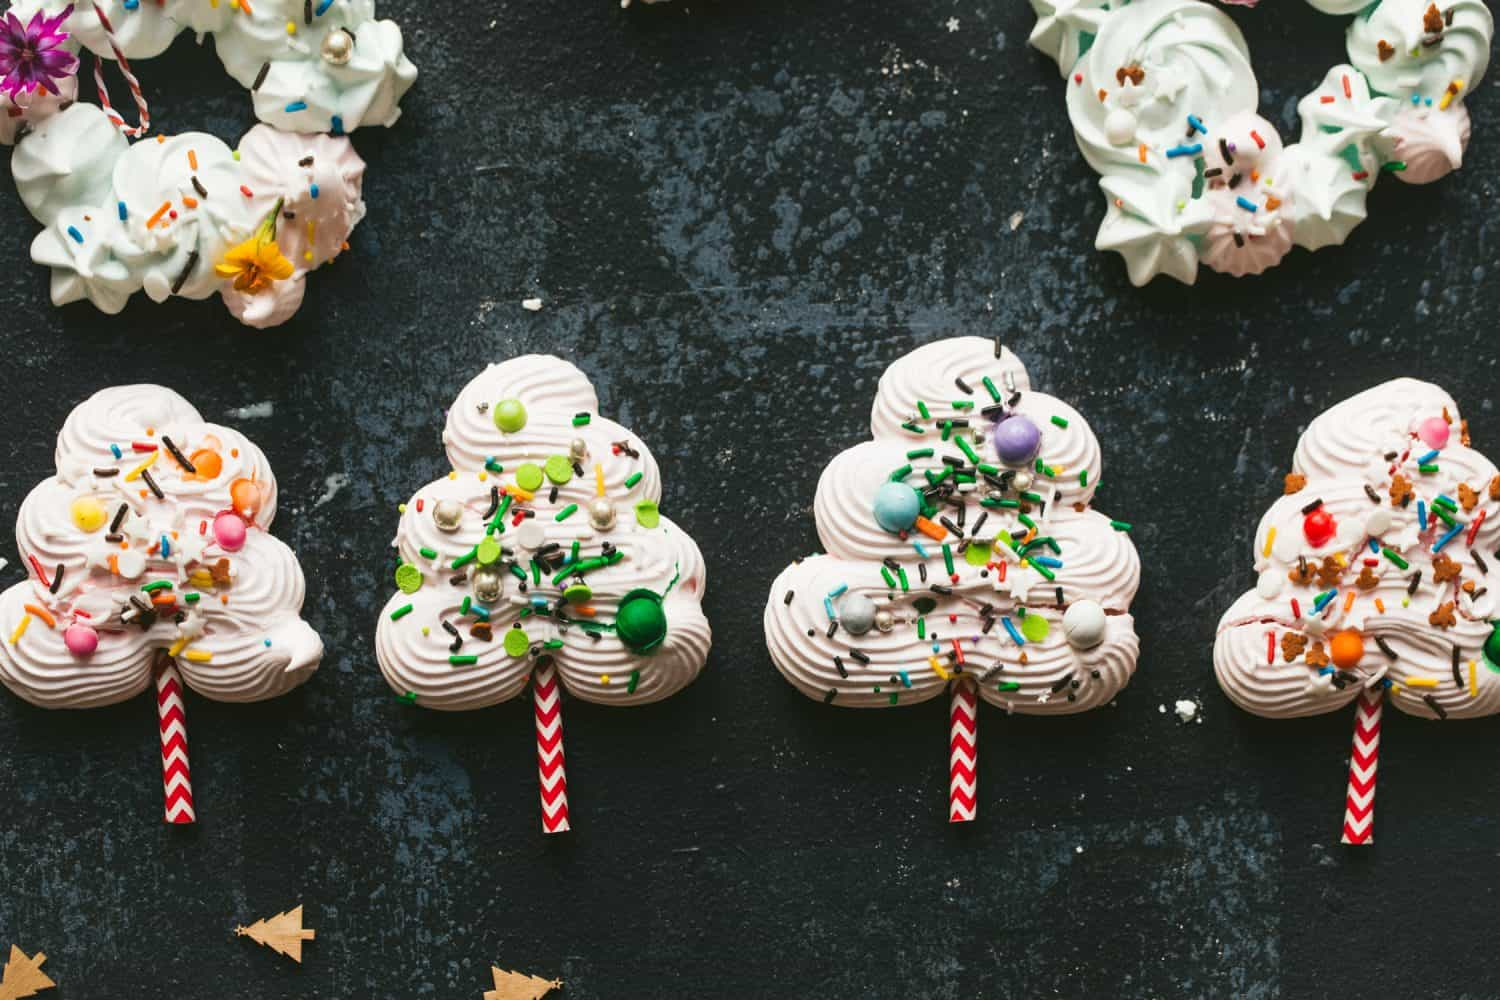 A row of four meringues in the shape of trees.